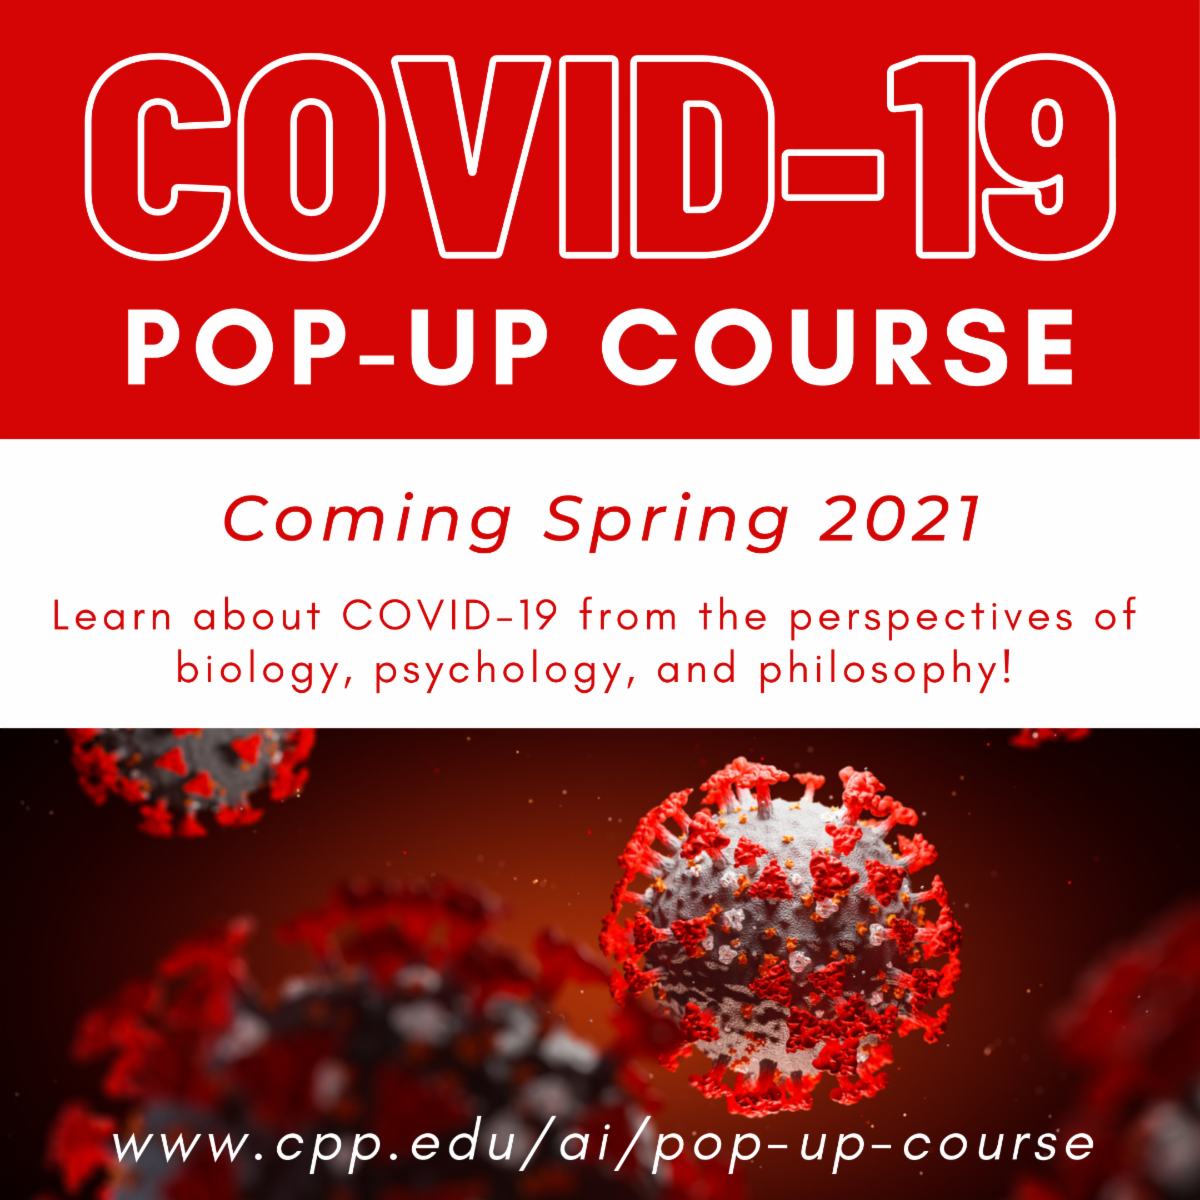 covi19 popup course for spring 2021